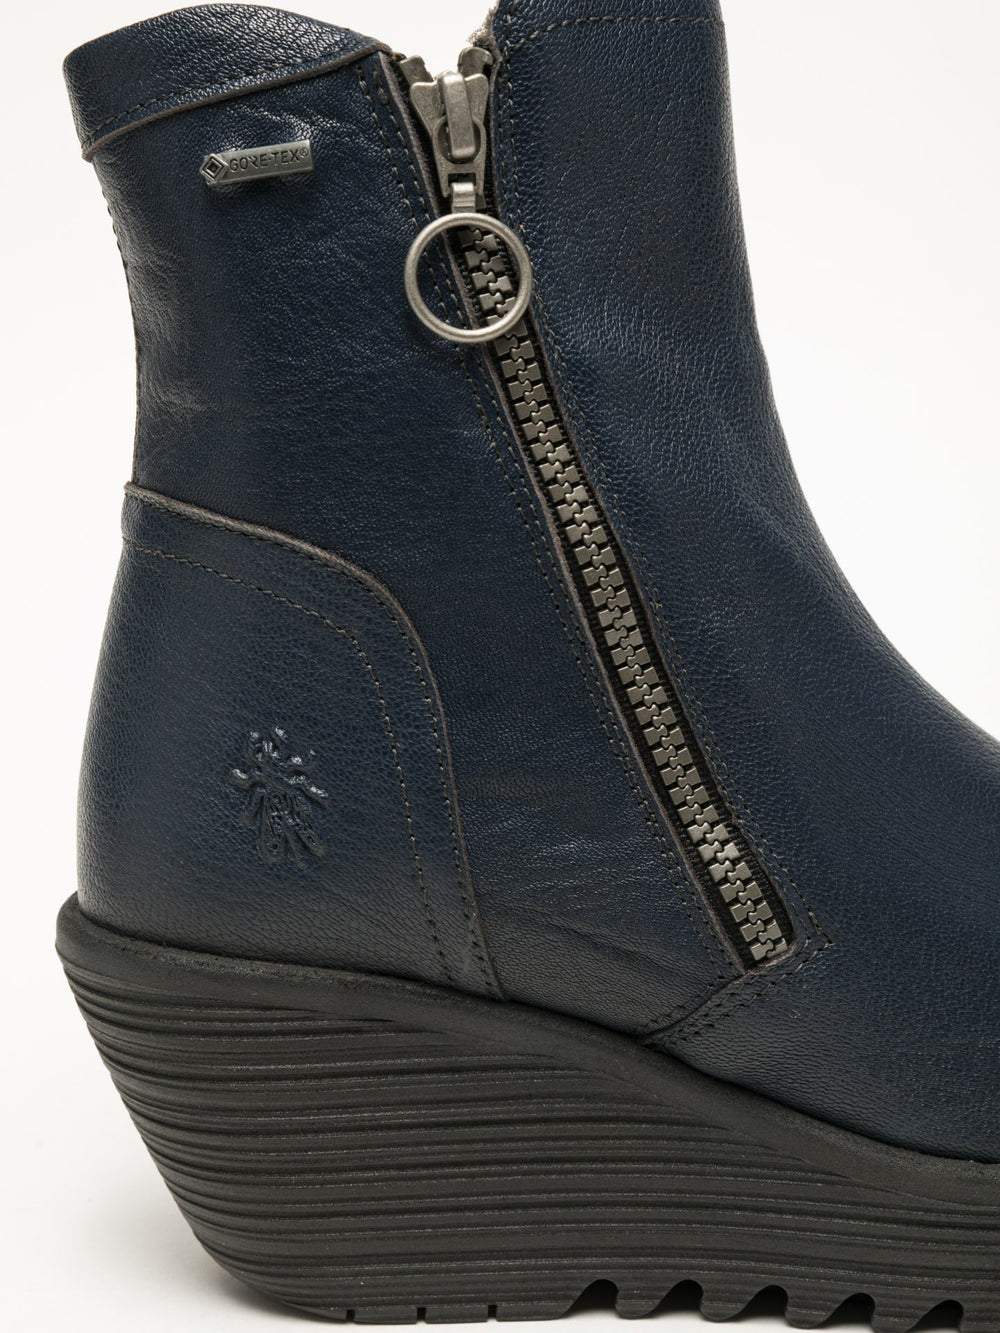 Zip Up Ankle Boots YOLK377FLY OCEAN